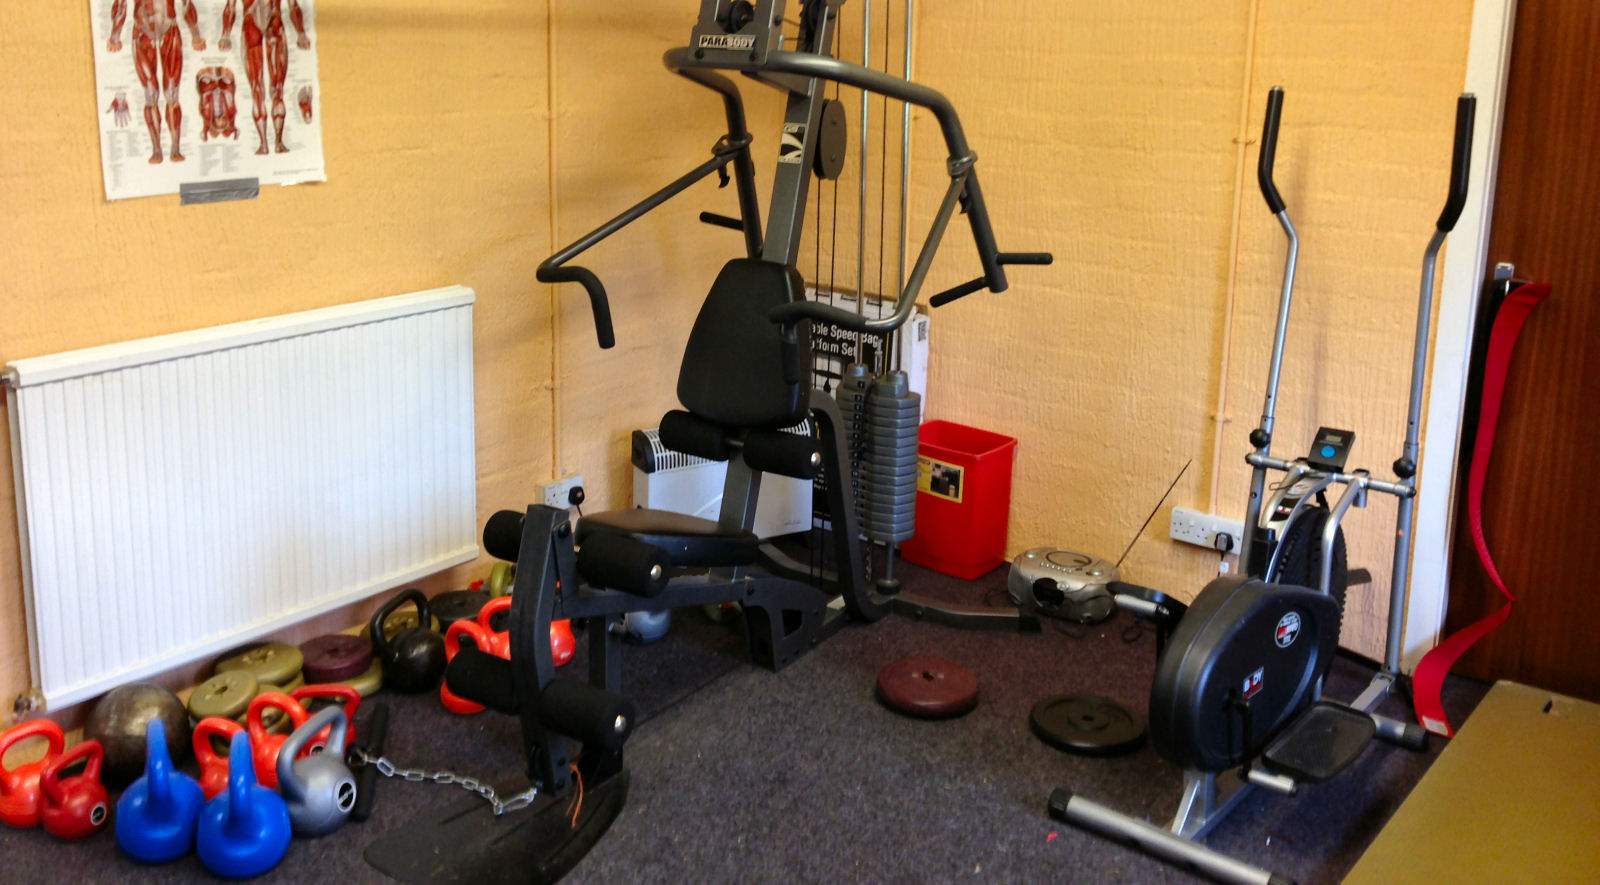 jubilee fitness room hire